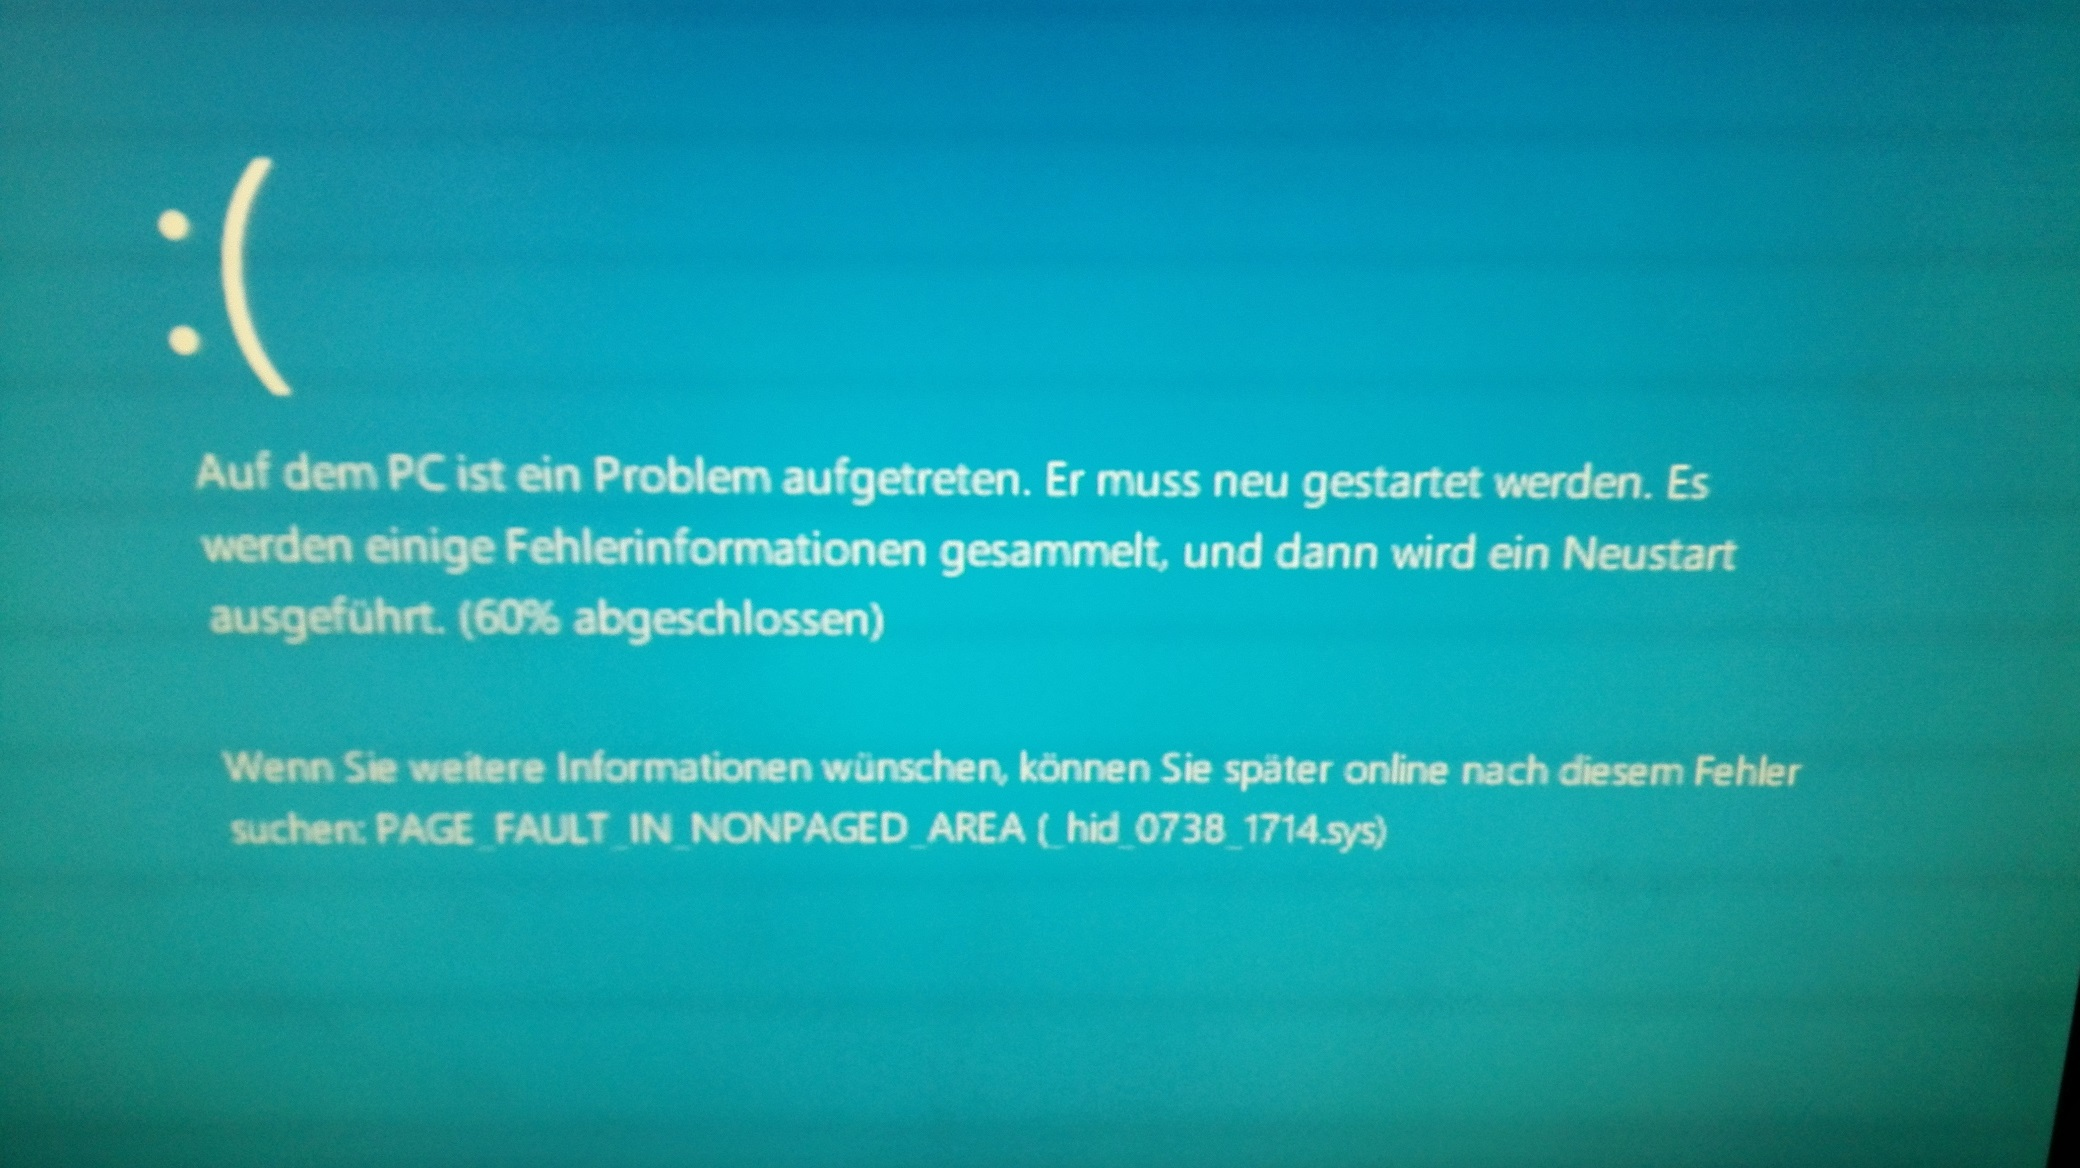 Windows Fehler Page_fault_in_nonpaged_area